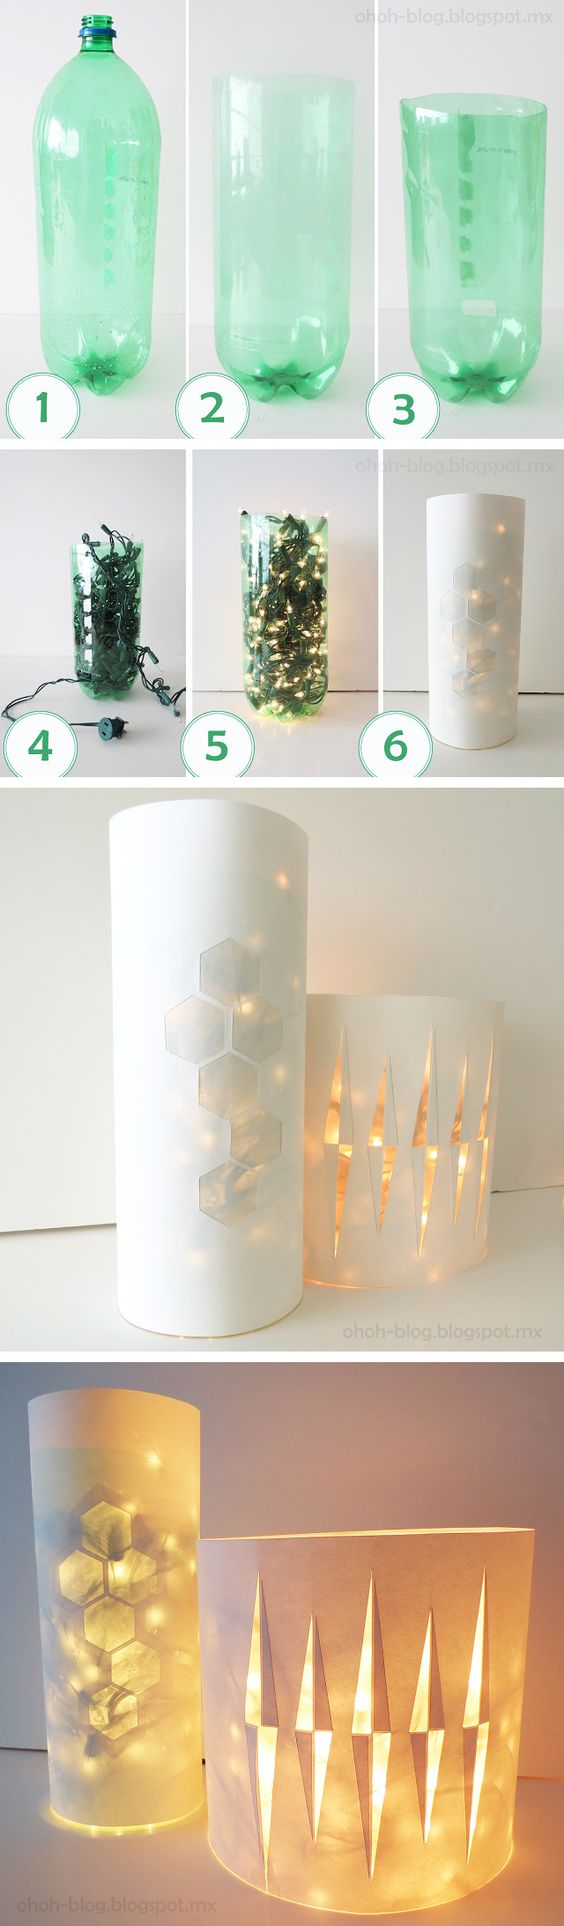 21 DIY Ideas  and  Tutorials To Recycle Plastic Bottles Into Useful Things